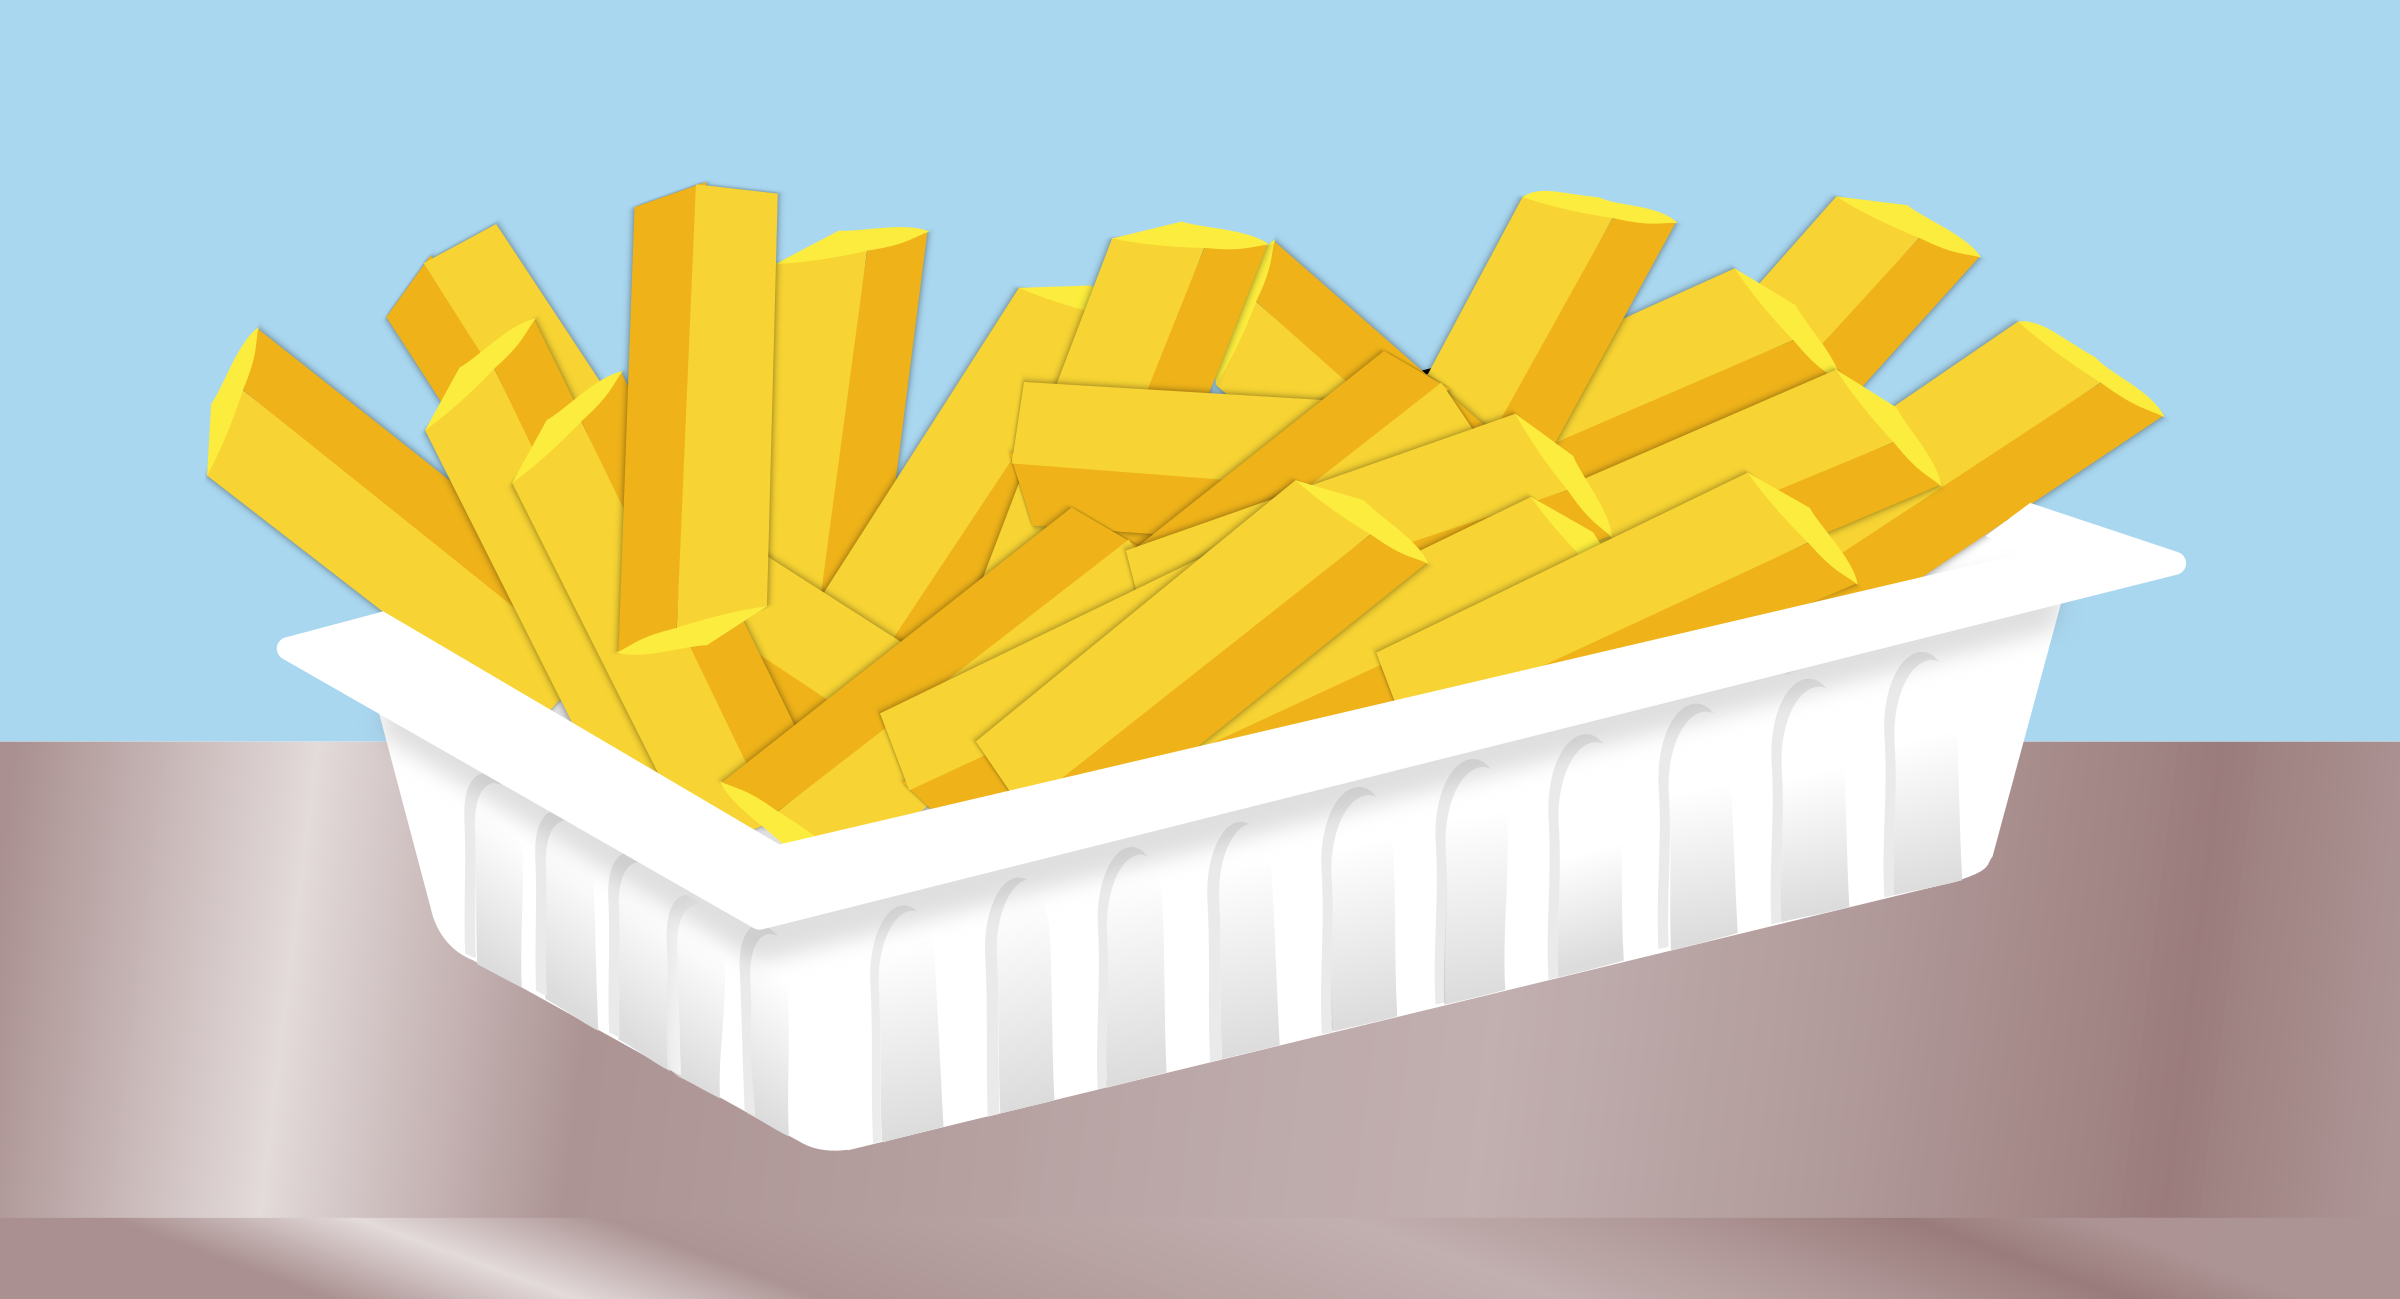 Fries without sauce by rdevries